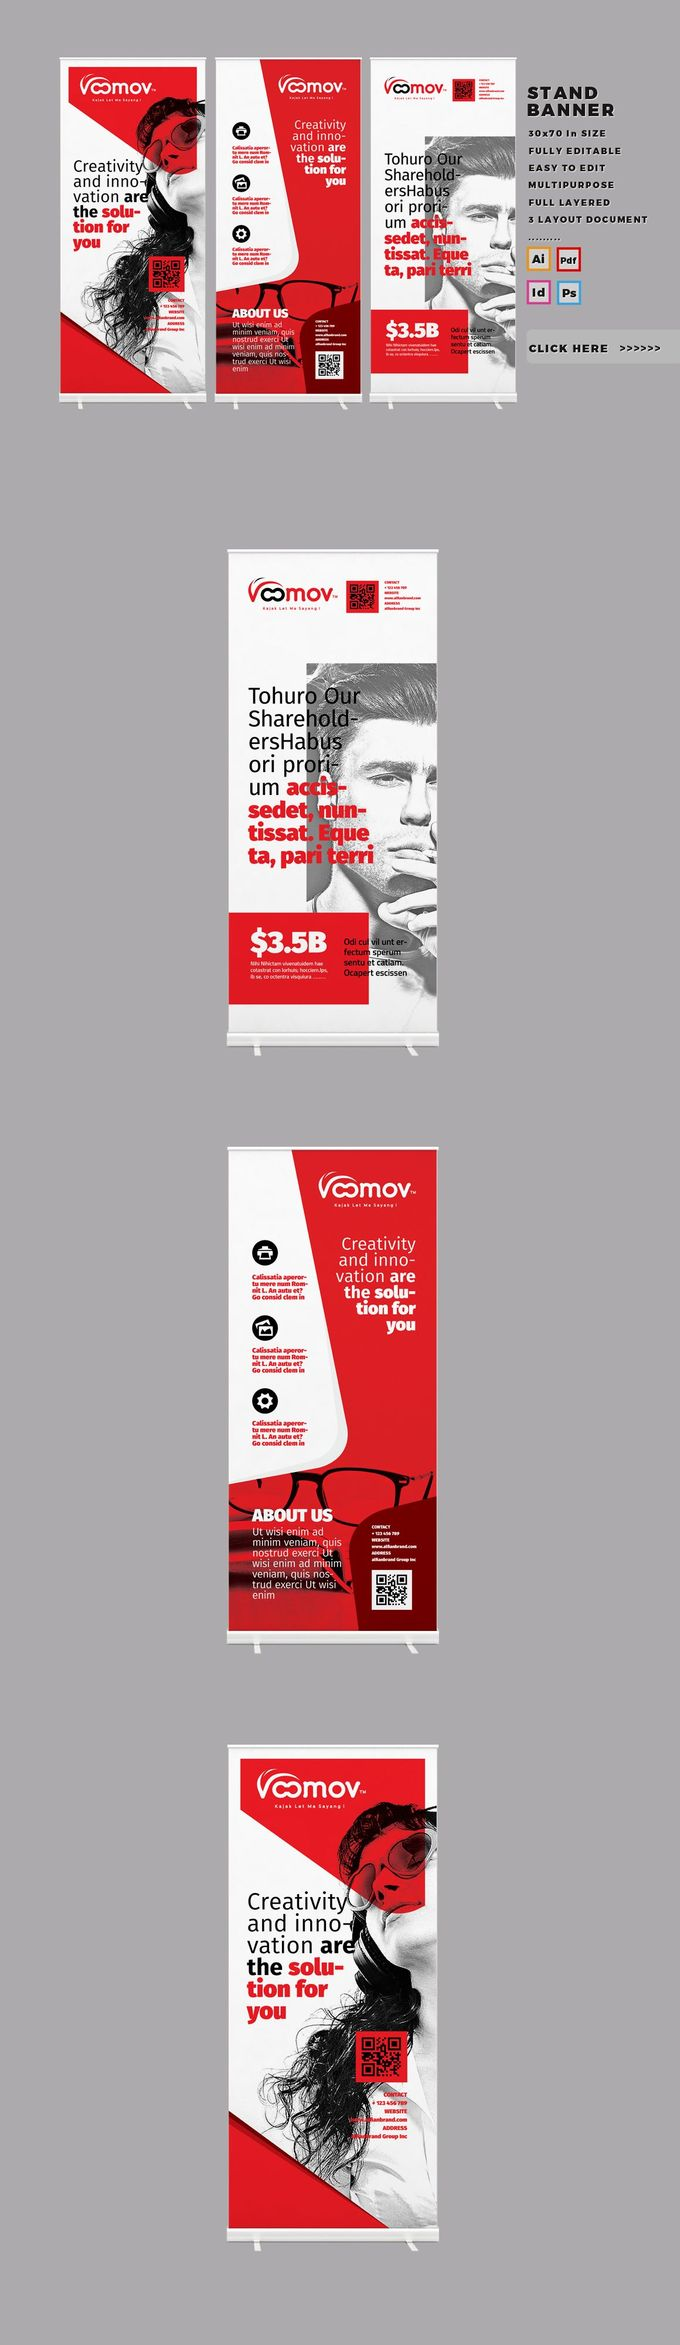 banner,	rollup,	roll-up,	roll-up banner, display,	business,	corporate,	offer, proposal,	flyer,	banner template,	flyer template,	poster,	stand,	advertising, blue,	red,	typoedition,	print template, elegant,	family,	fun,	day,	night,	fair, festival,	fest,	cam…